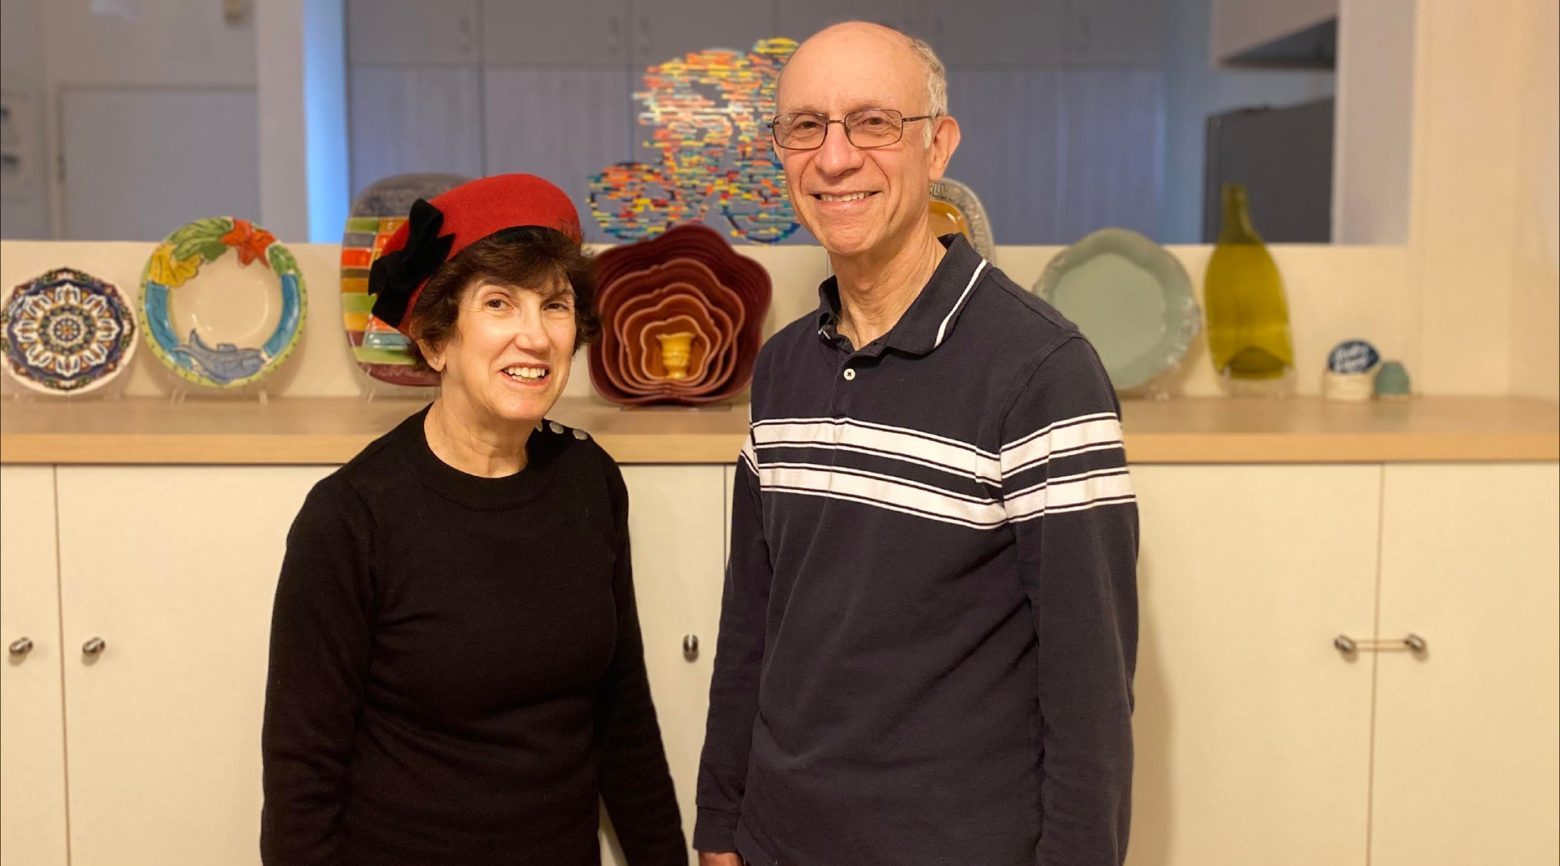 Naomi and Stanley Goldis, originally from Bala Cynwyd, Pa., immigrated to Israel on Oct. 21, 2020 and live in Beit Shemesh.